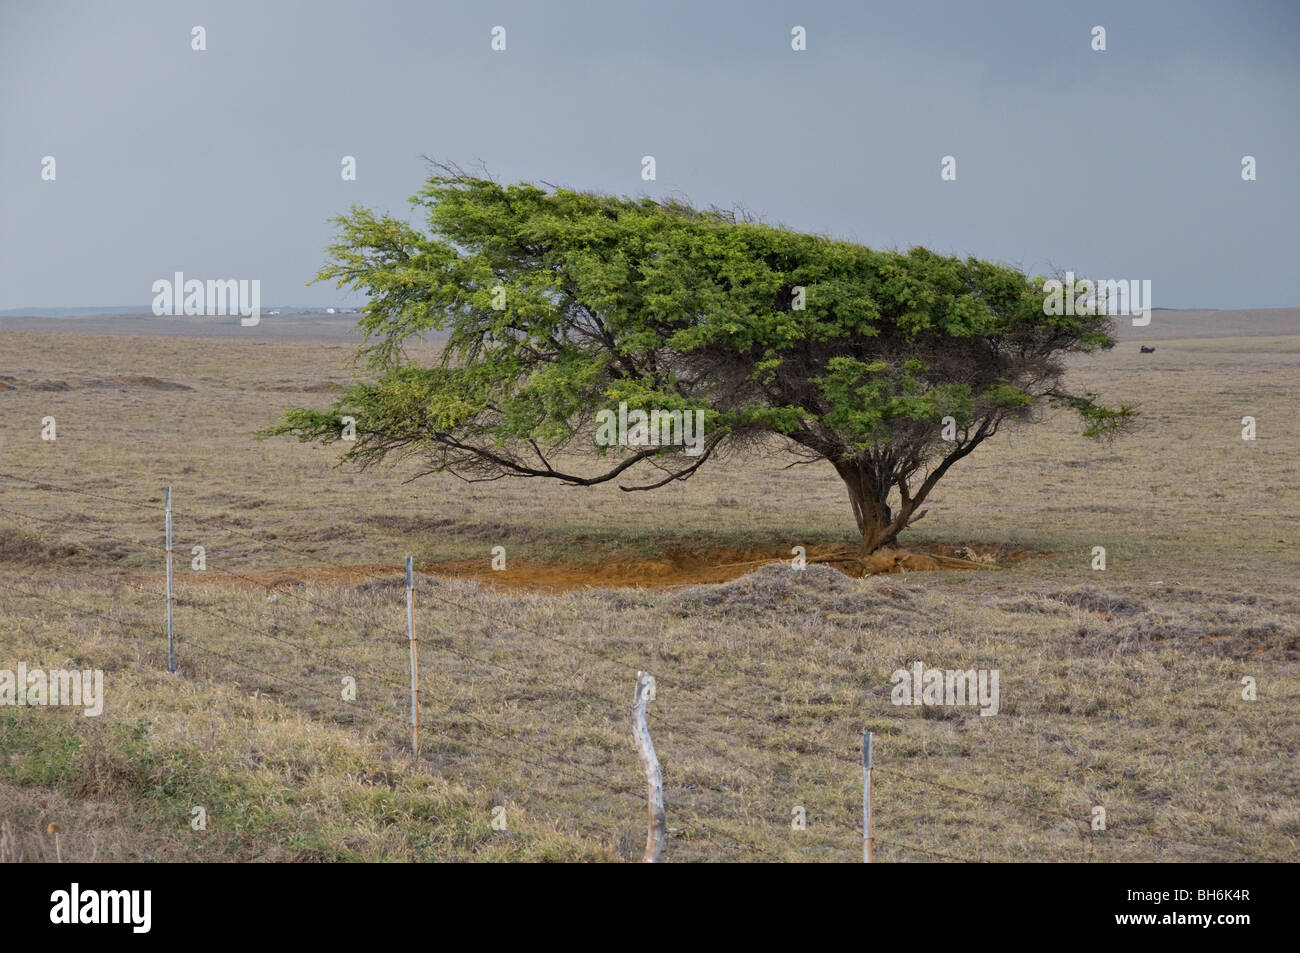 Elongated tree due to wind - Stock Image